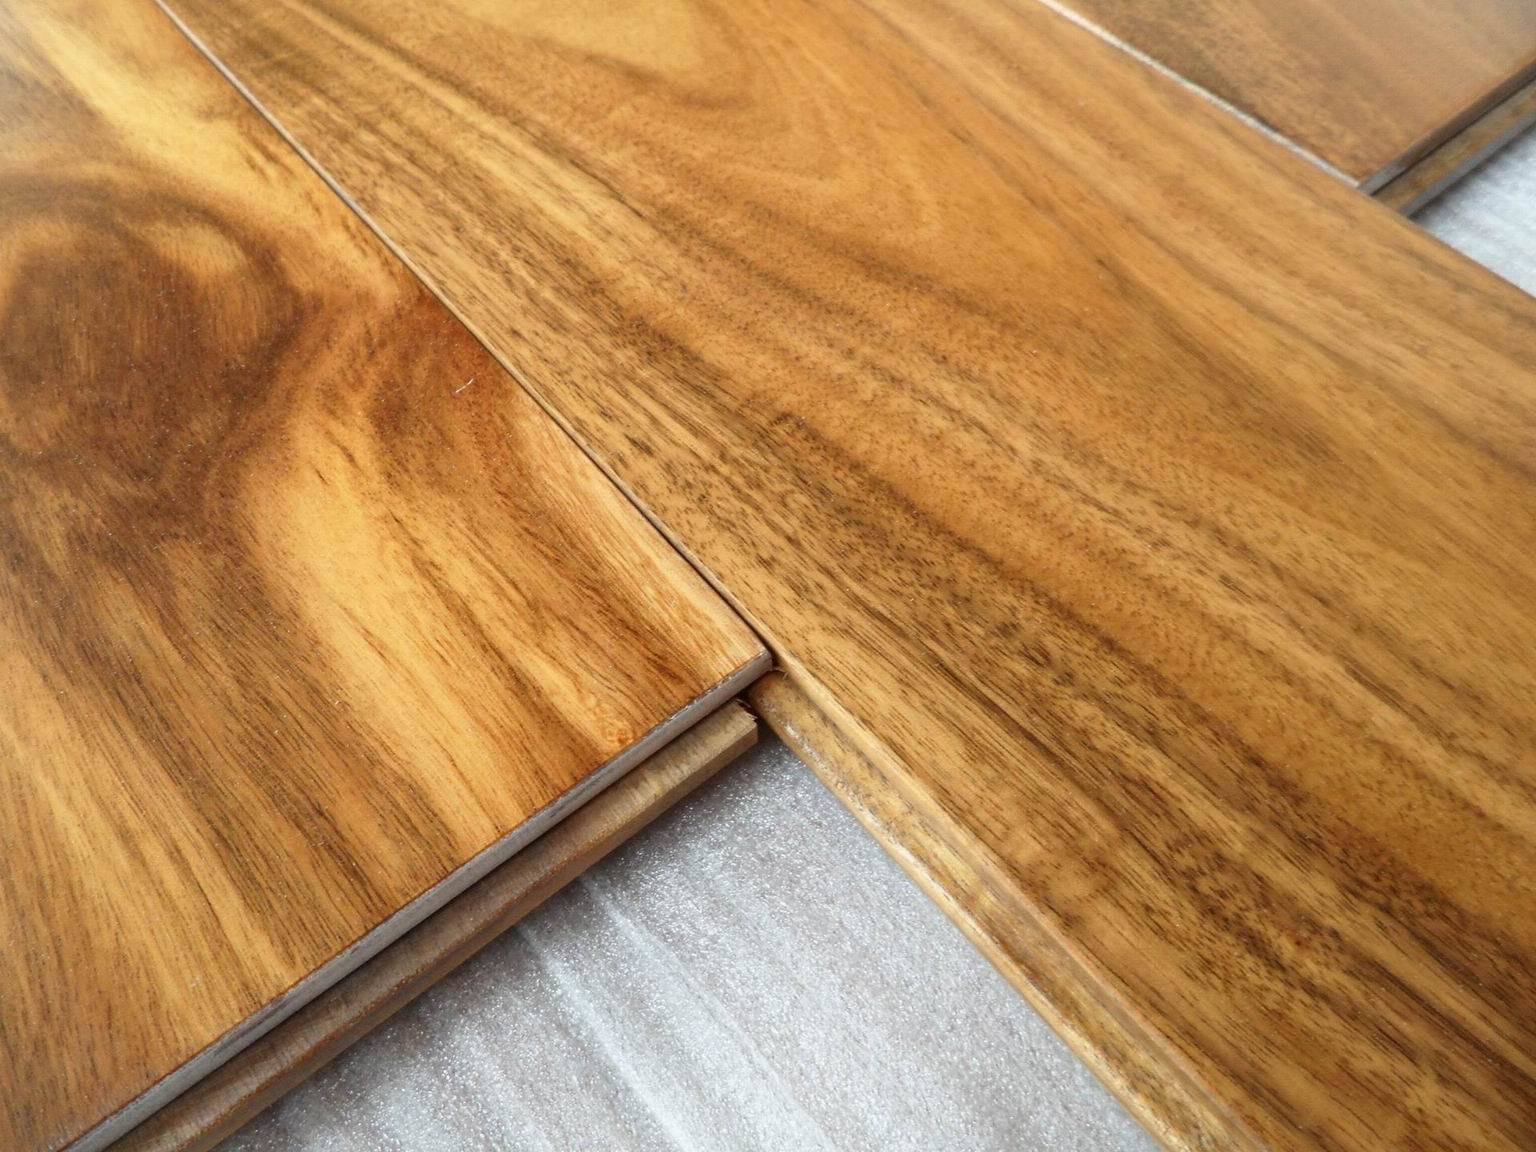 golden acacia wood flooring the perfect hardwood flooring from china golden acacia wood flooring the perfect